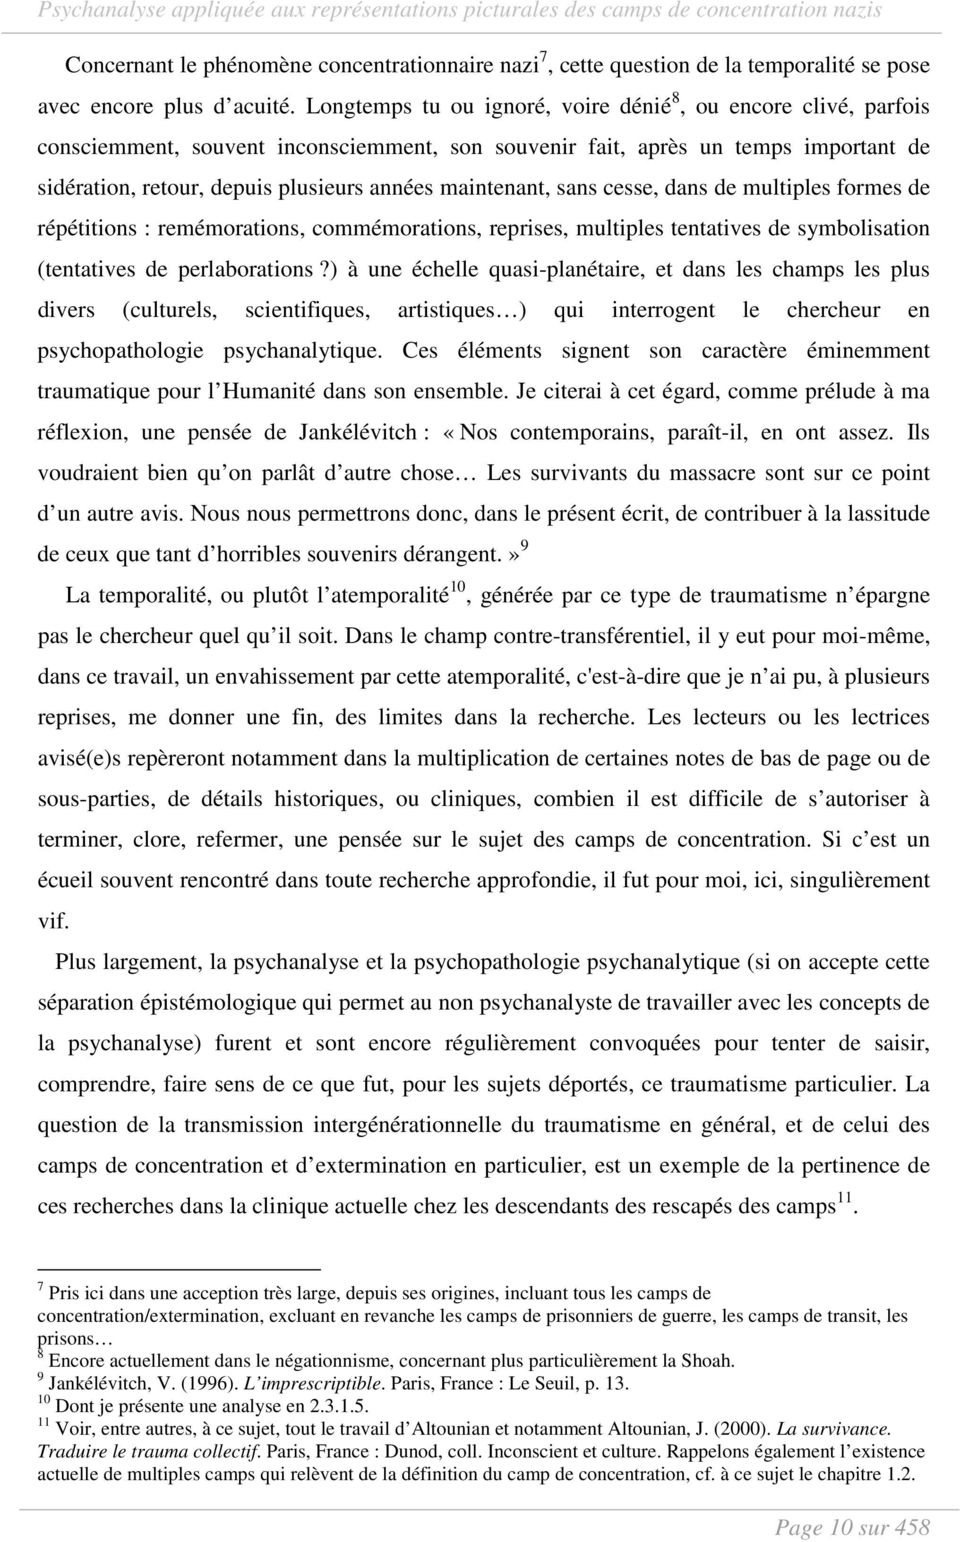 maintenant, sans cesse, dans de multiples formes de répétitions : remémorations, commémorations, reprises, multiples tentatives de symbolisation (tentatives de perlaborations?